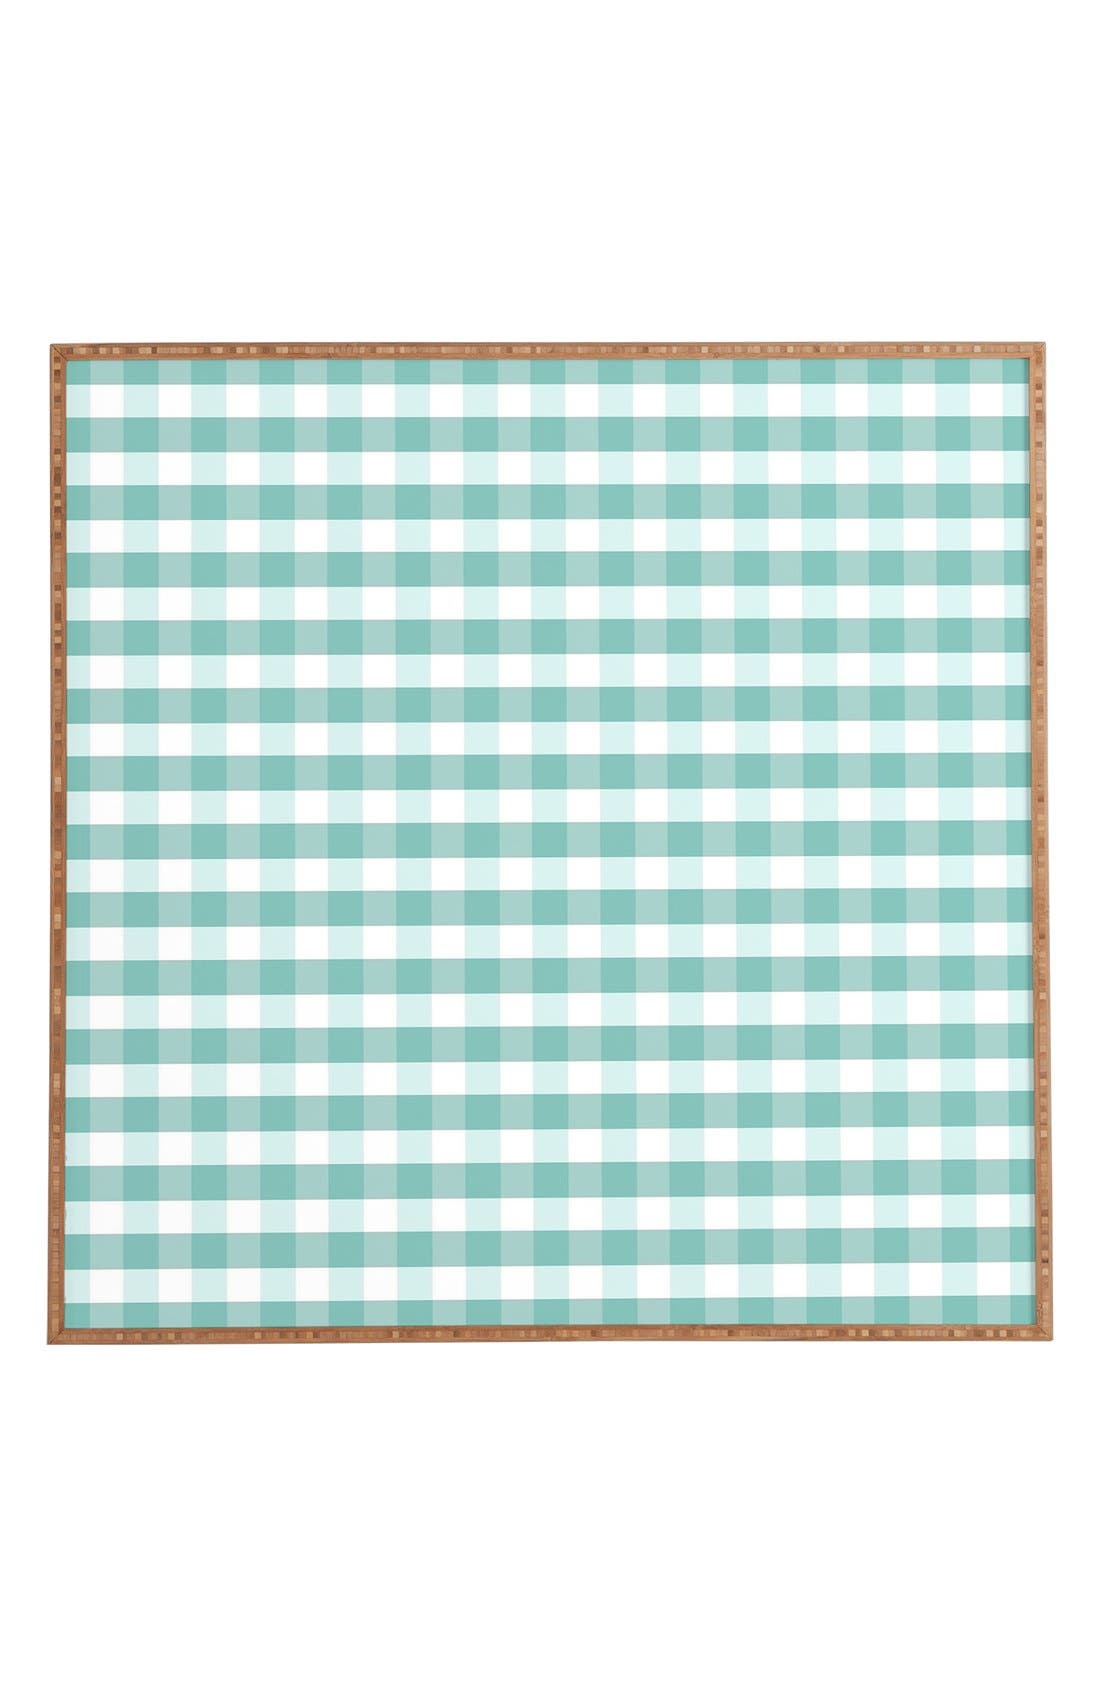 DENY DESIGNS 'Icy Gingham' Framed Wall Art